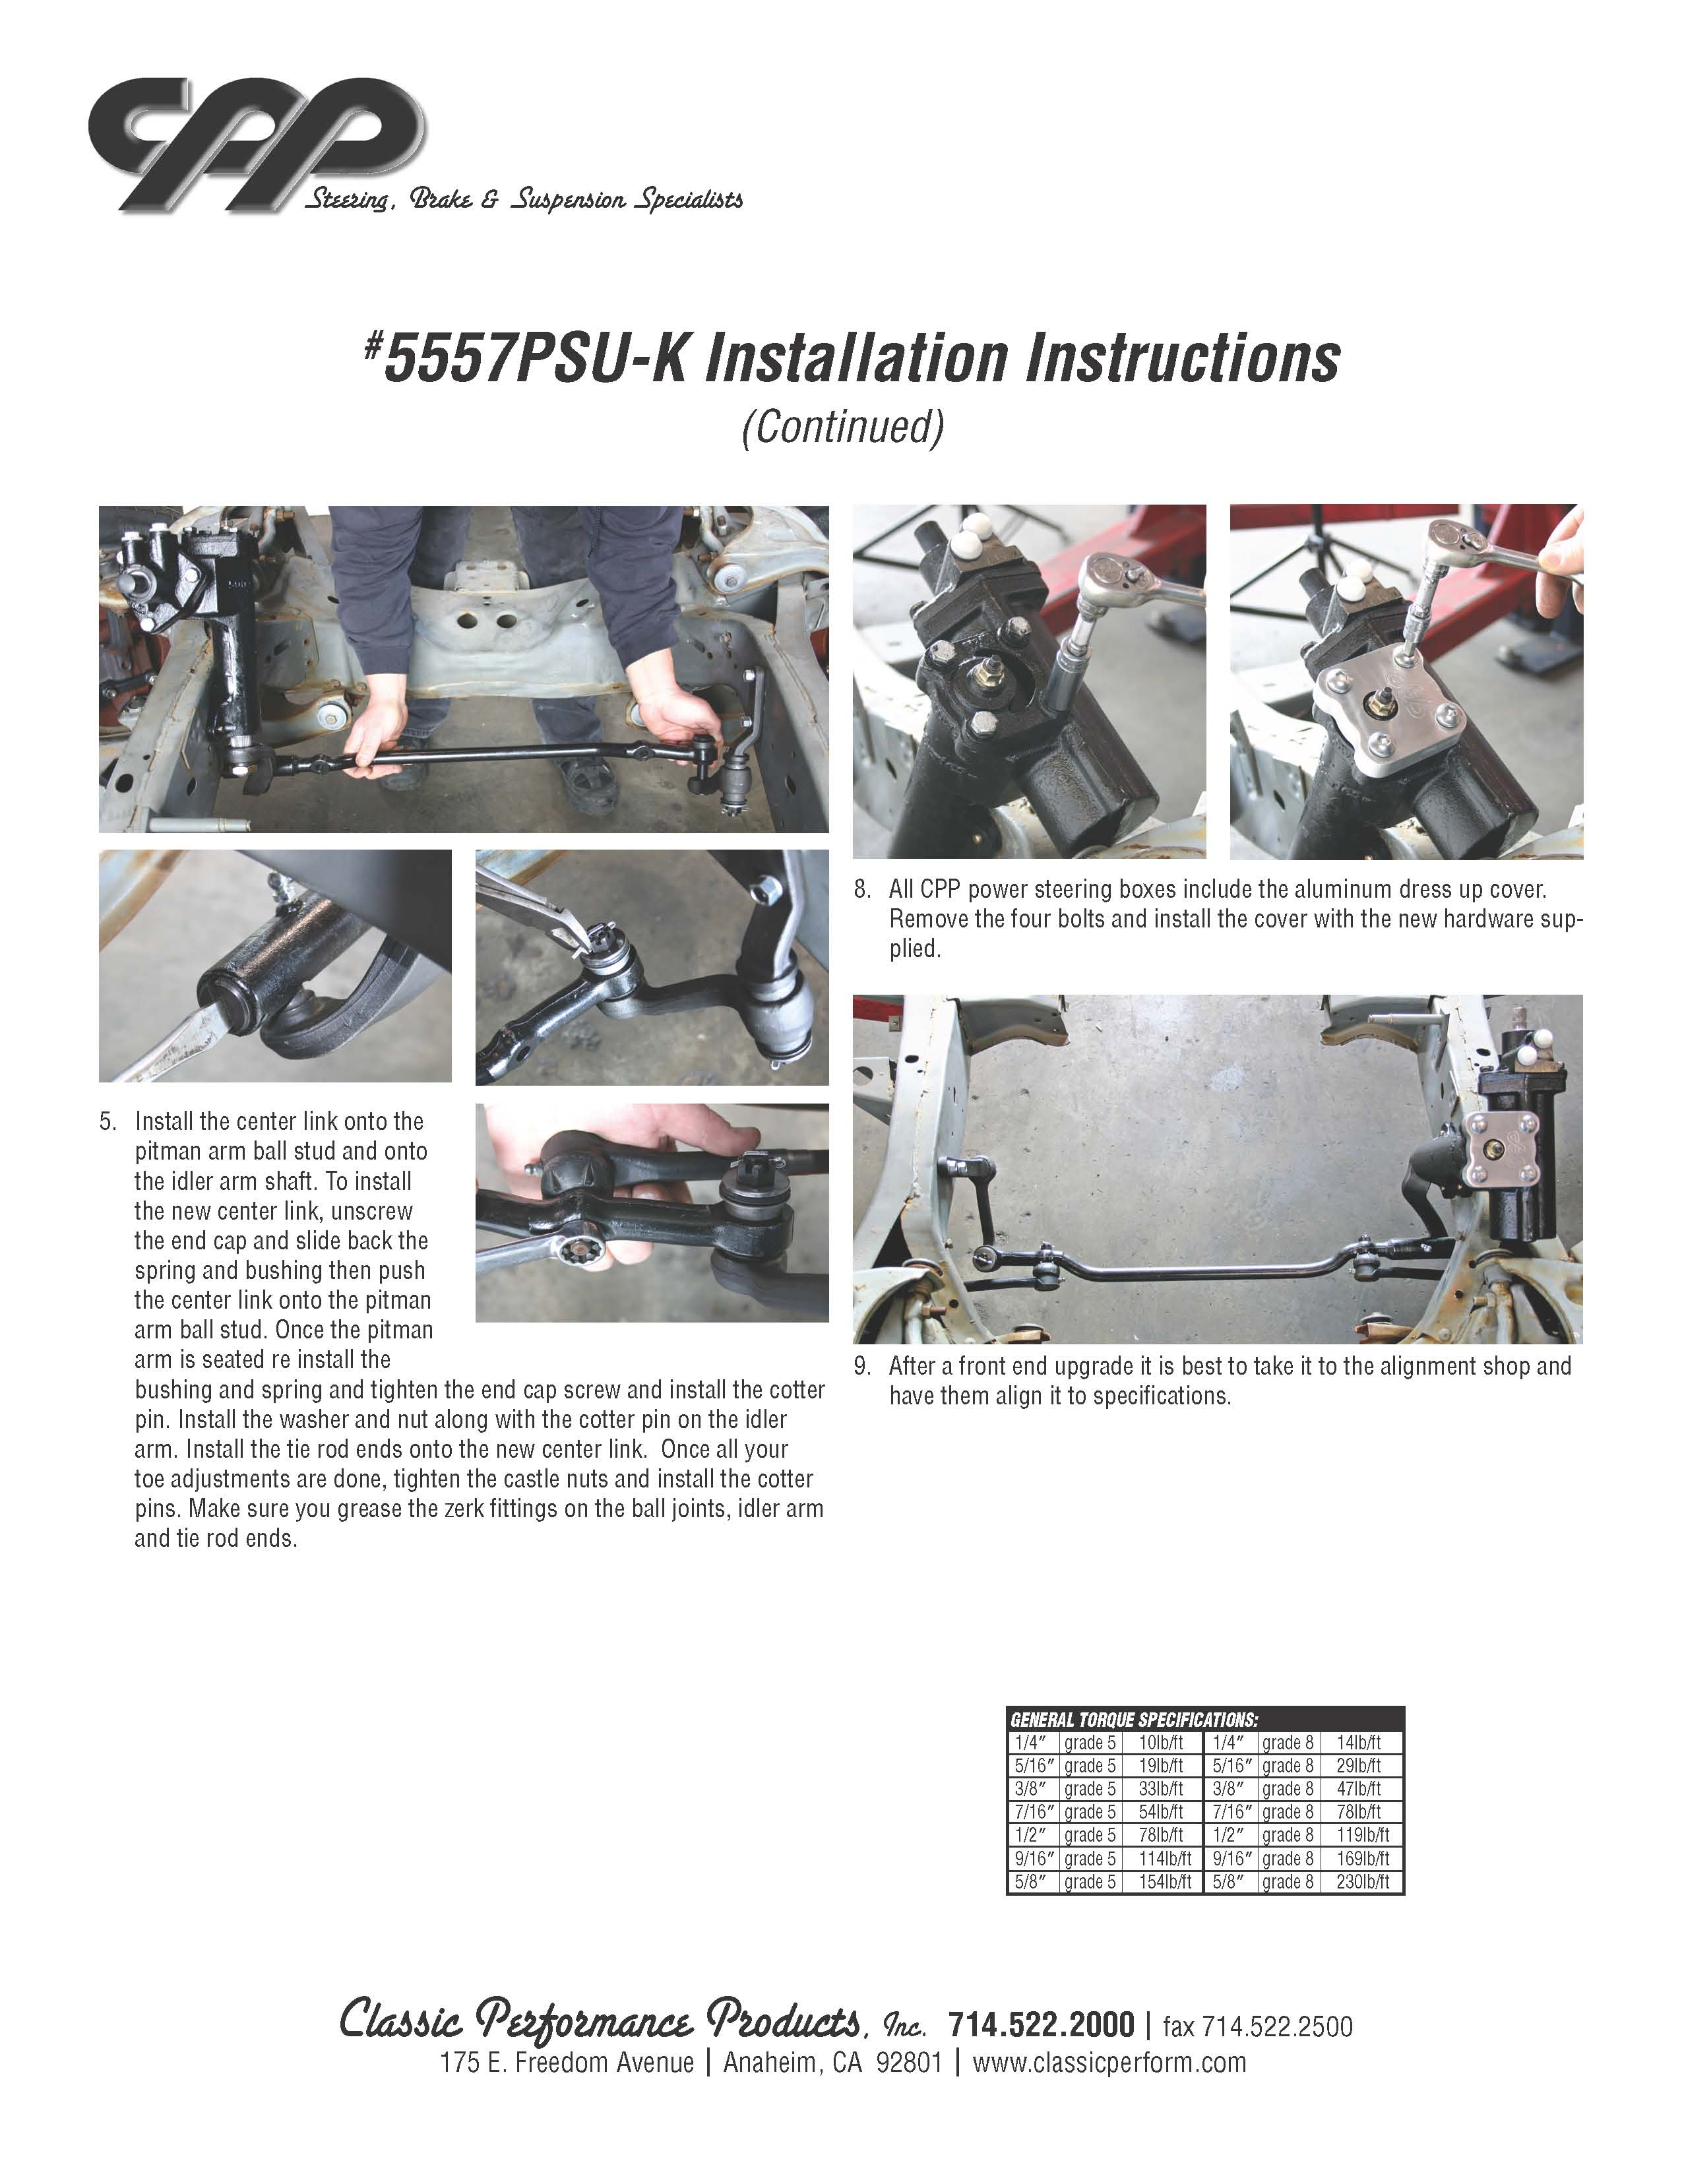 Click image for larger version  Name:Steer gearbox, install instruc pg 2 500 model CPP 5557PSU-K_Page_2.jpg Views:148 Size:485.1 KB ID:69797